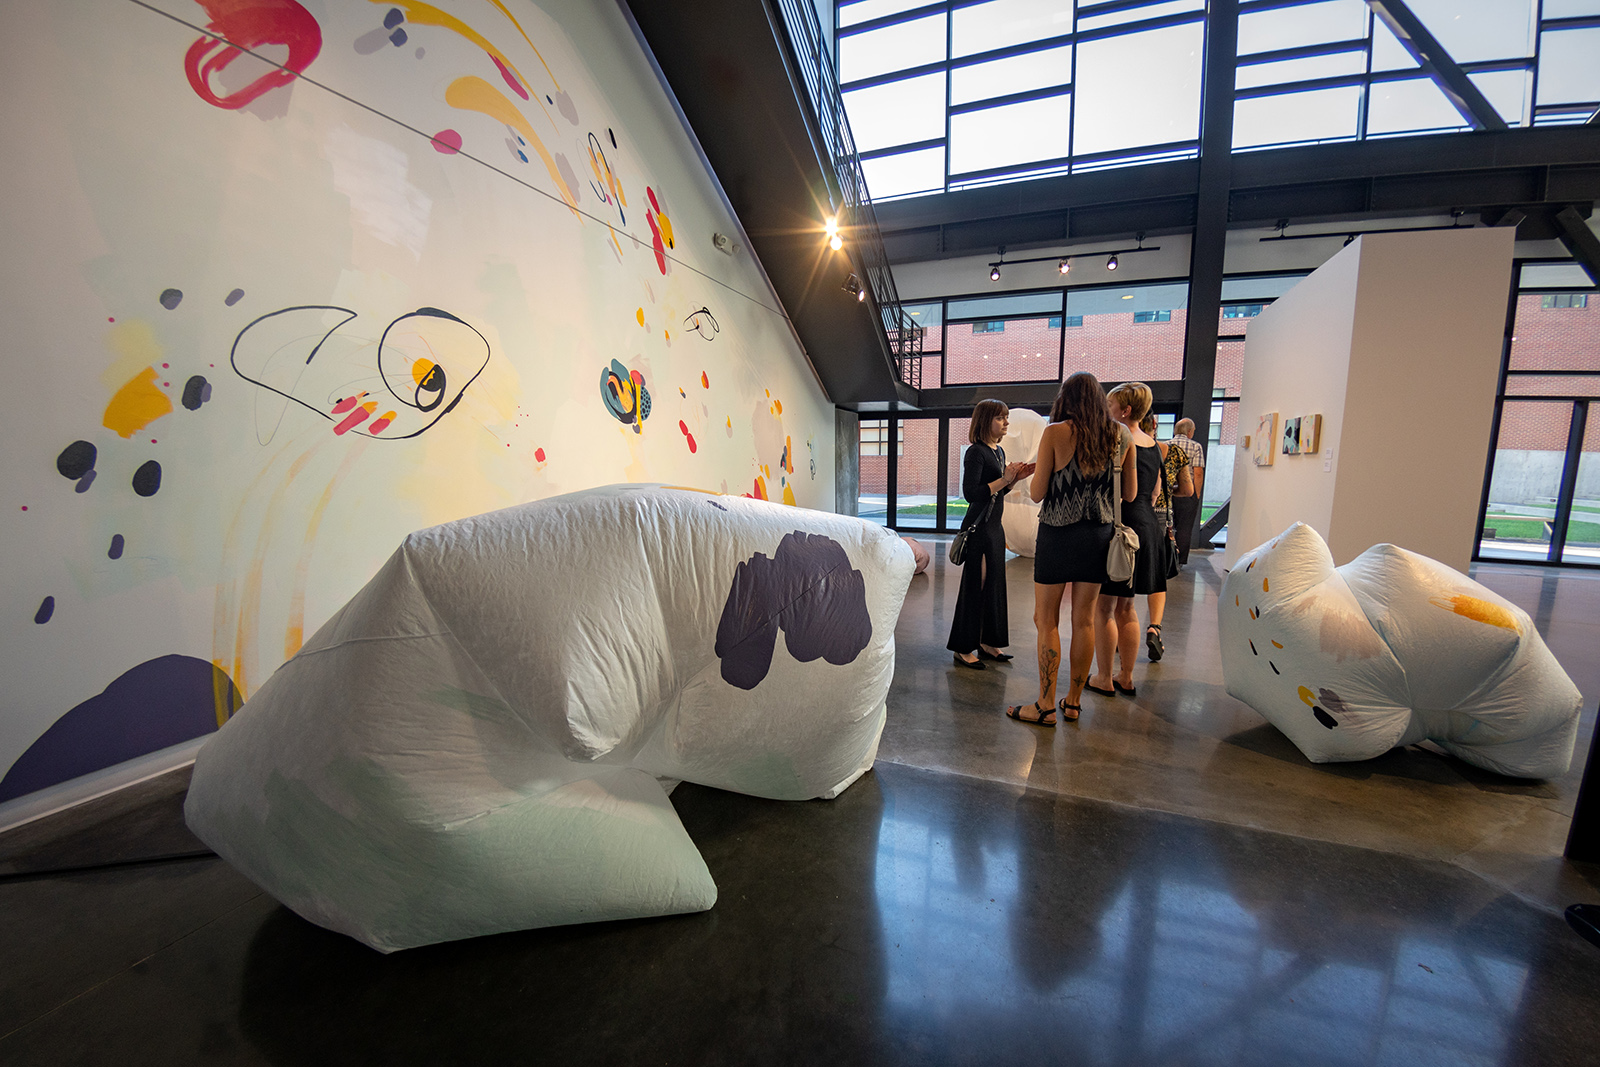 Mural and tyvek sculptures by Katelynn Noel Knick.  Spection  opening reception, August 3, 2018.  Photo credit: Thomas Shahan